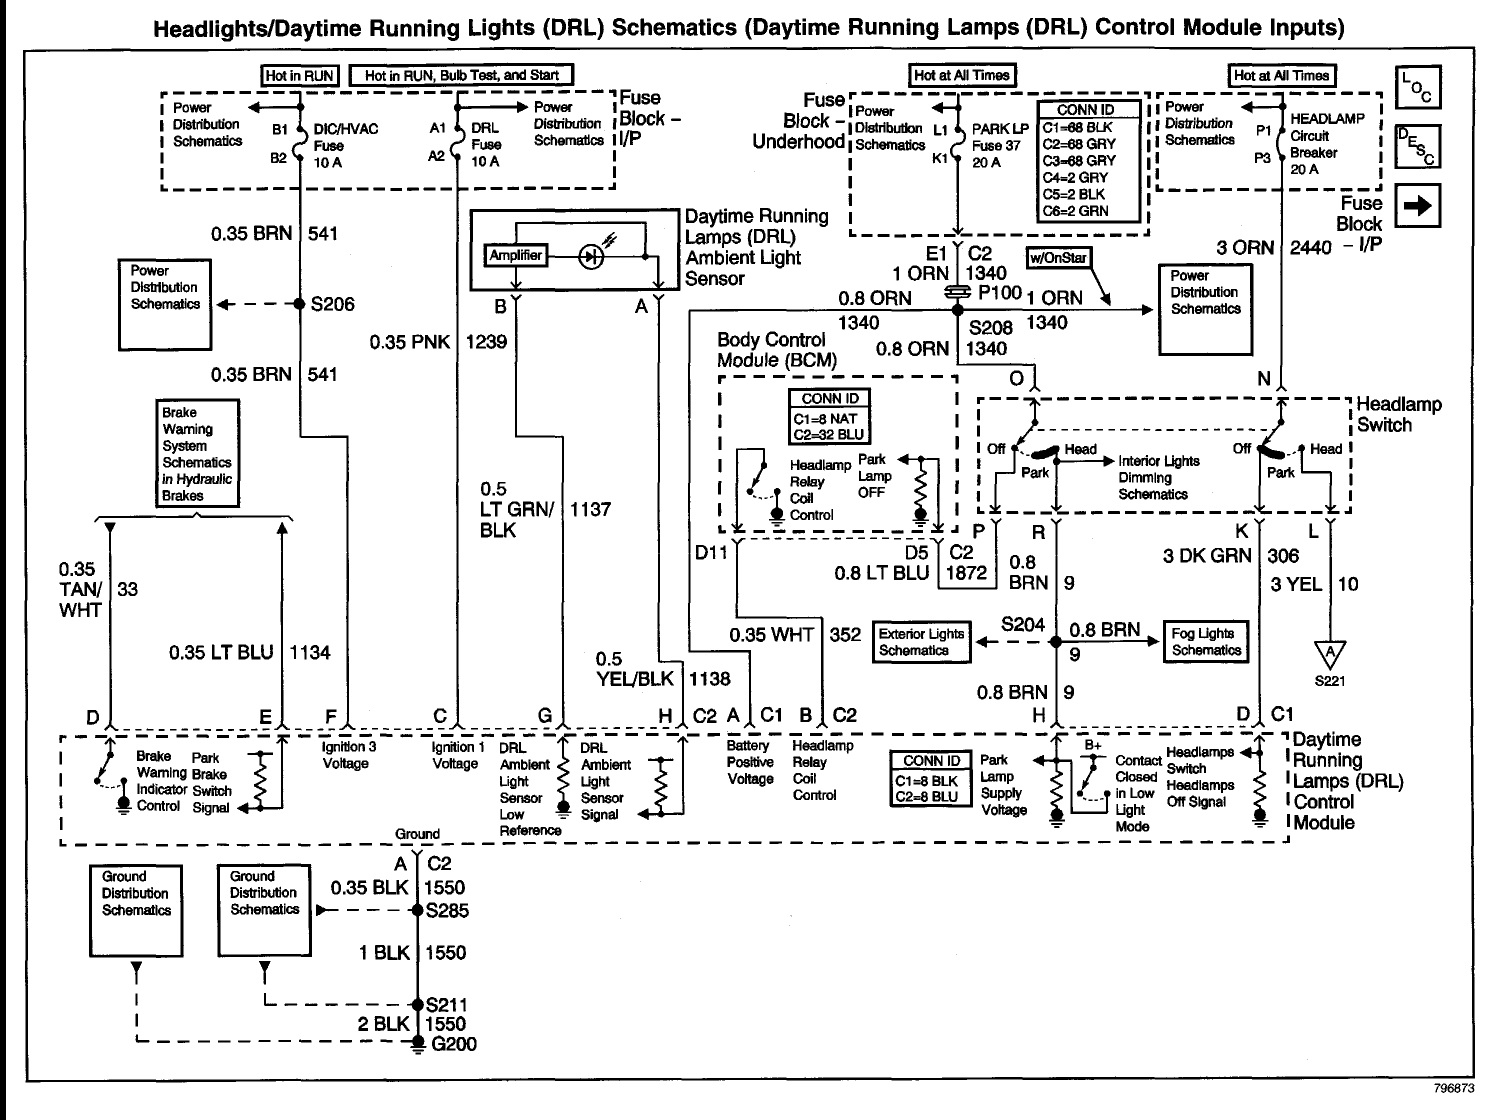 diagram] 2002 pontiac grand prix tail light wiring diagram full version hd  quality wiring diagram - gwendiagram.libreriabaobab.it  libreriabaobab.it